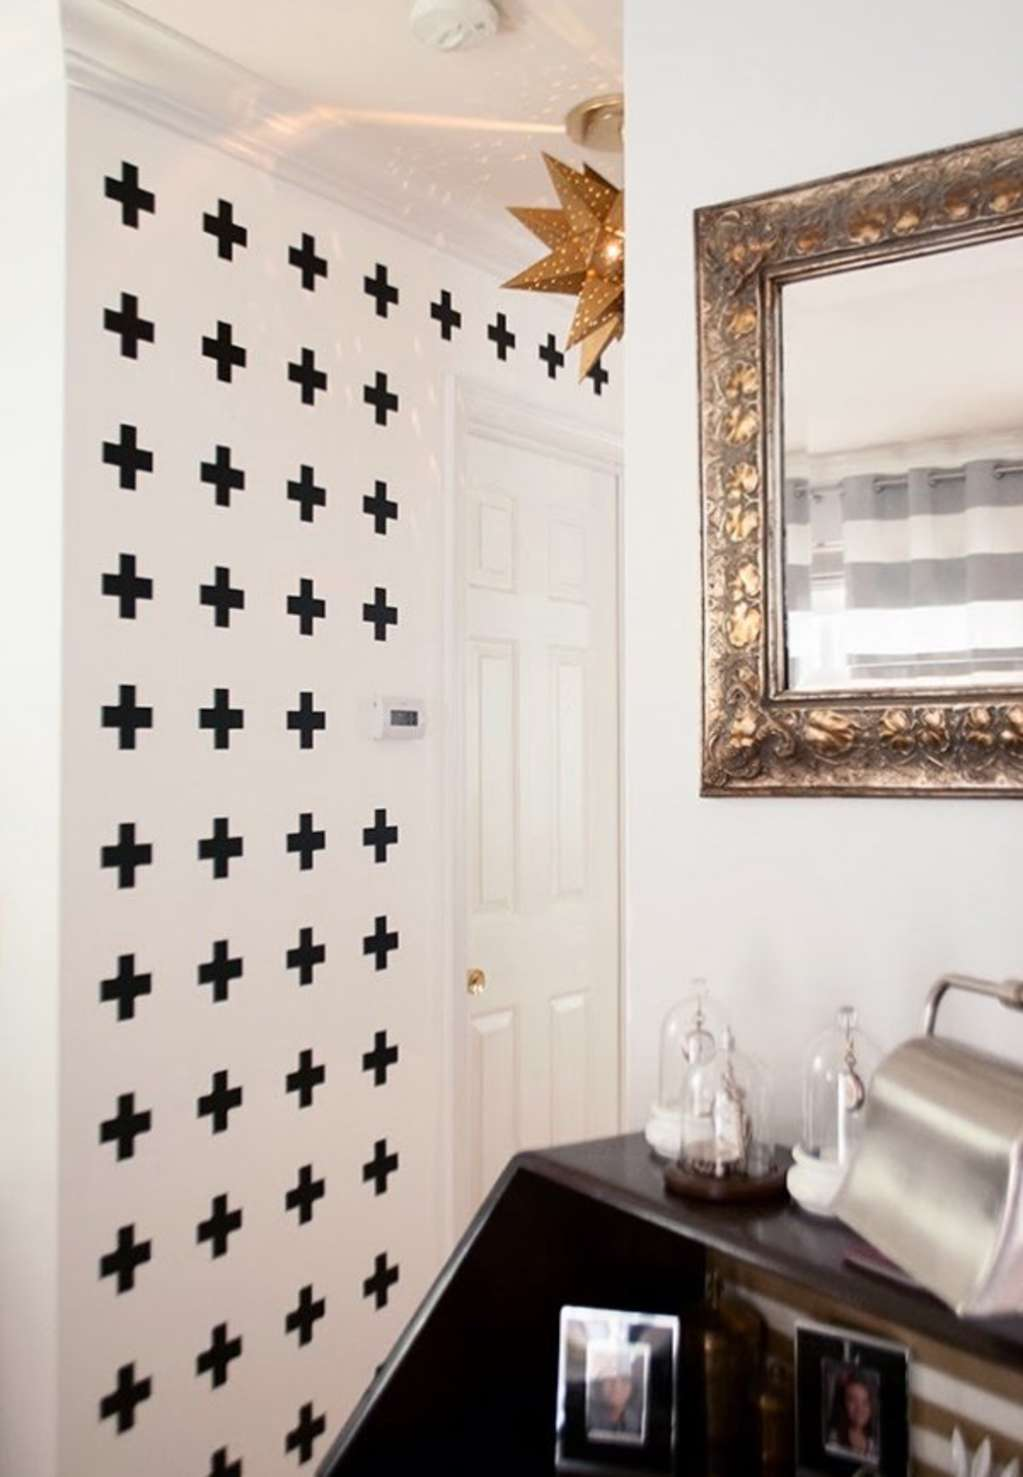 3 DIY Ideas For Patterned Walls That Don't Require Painting Them